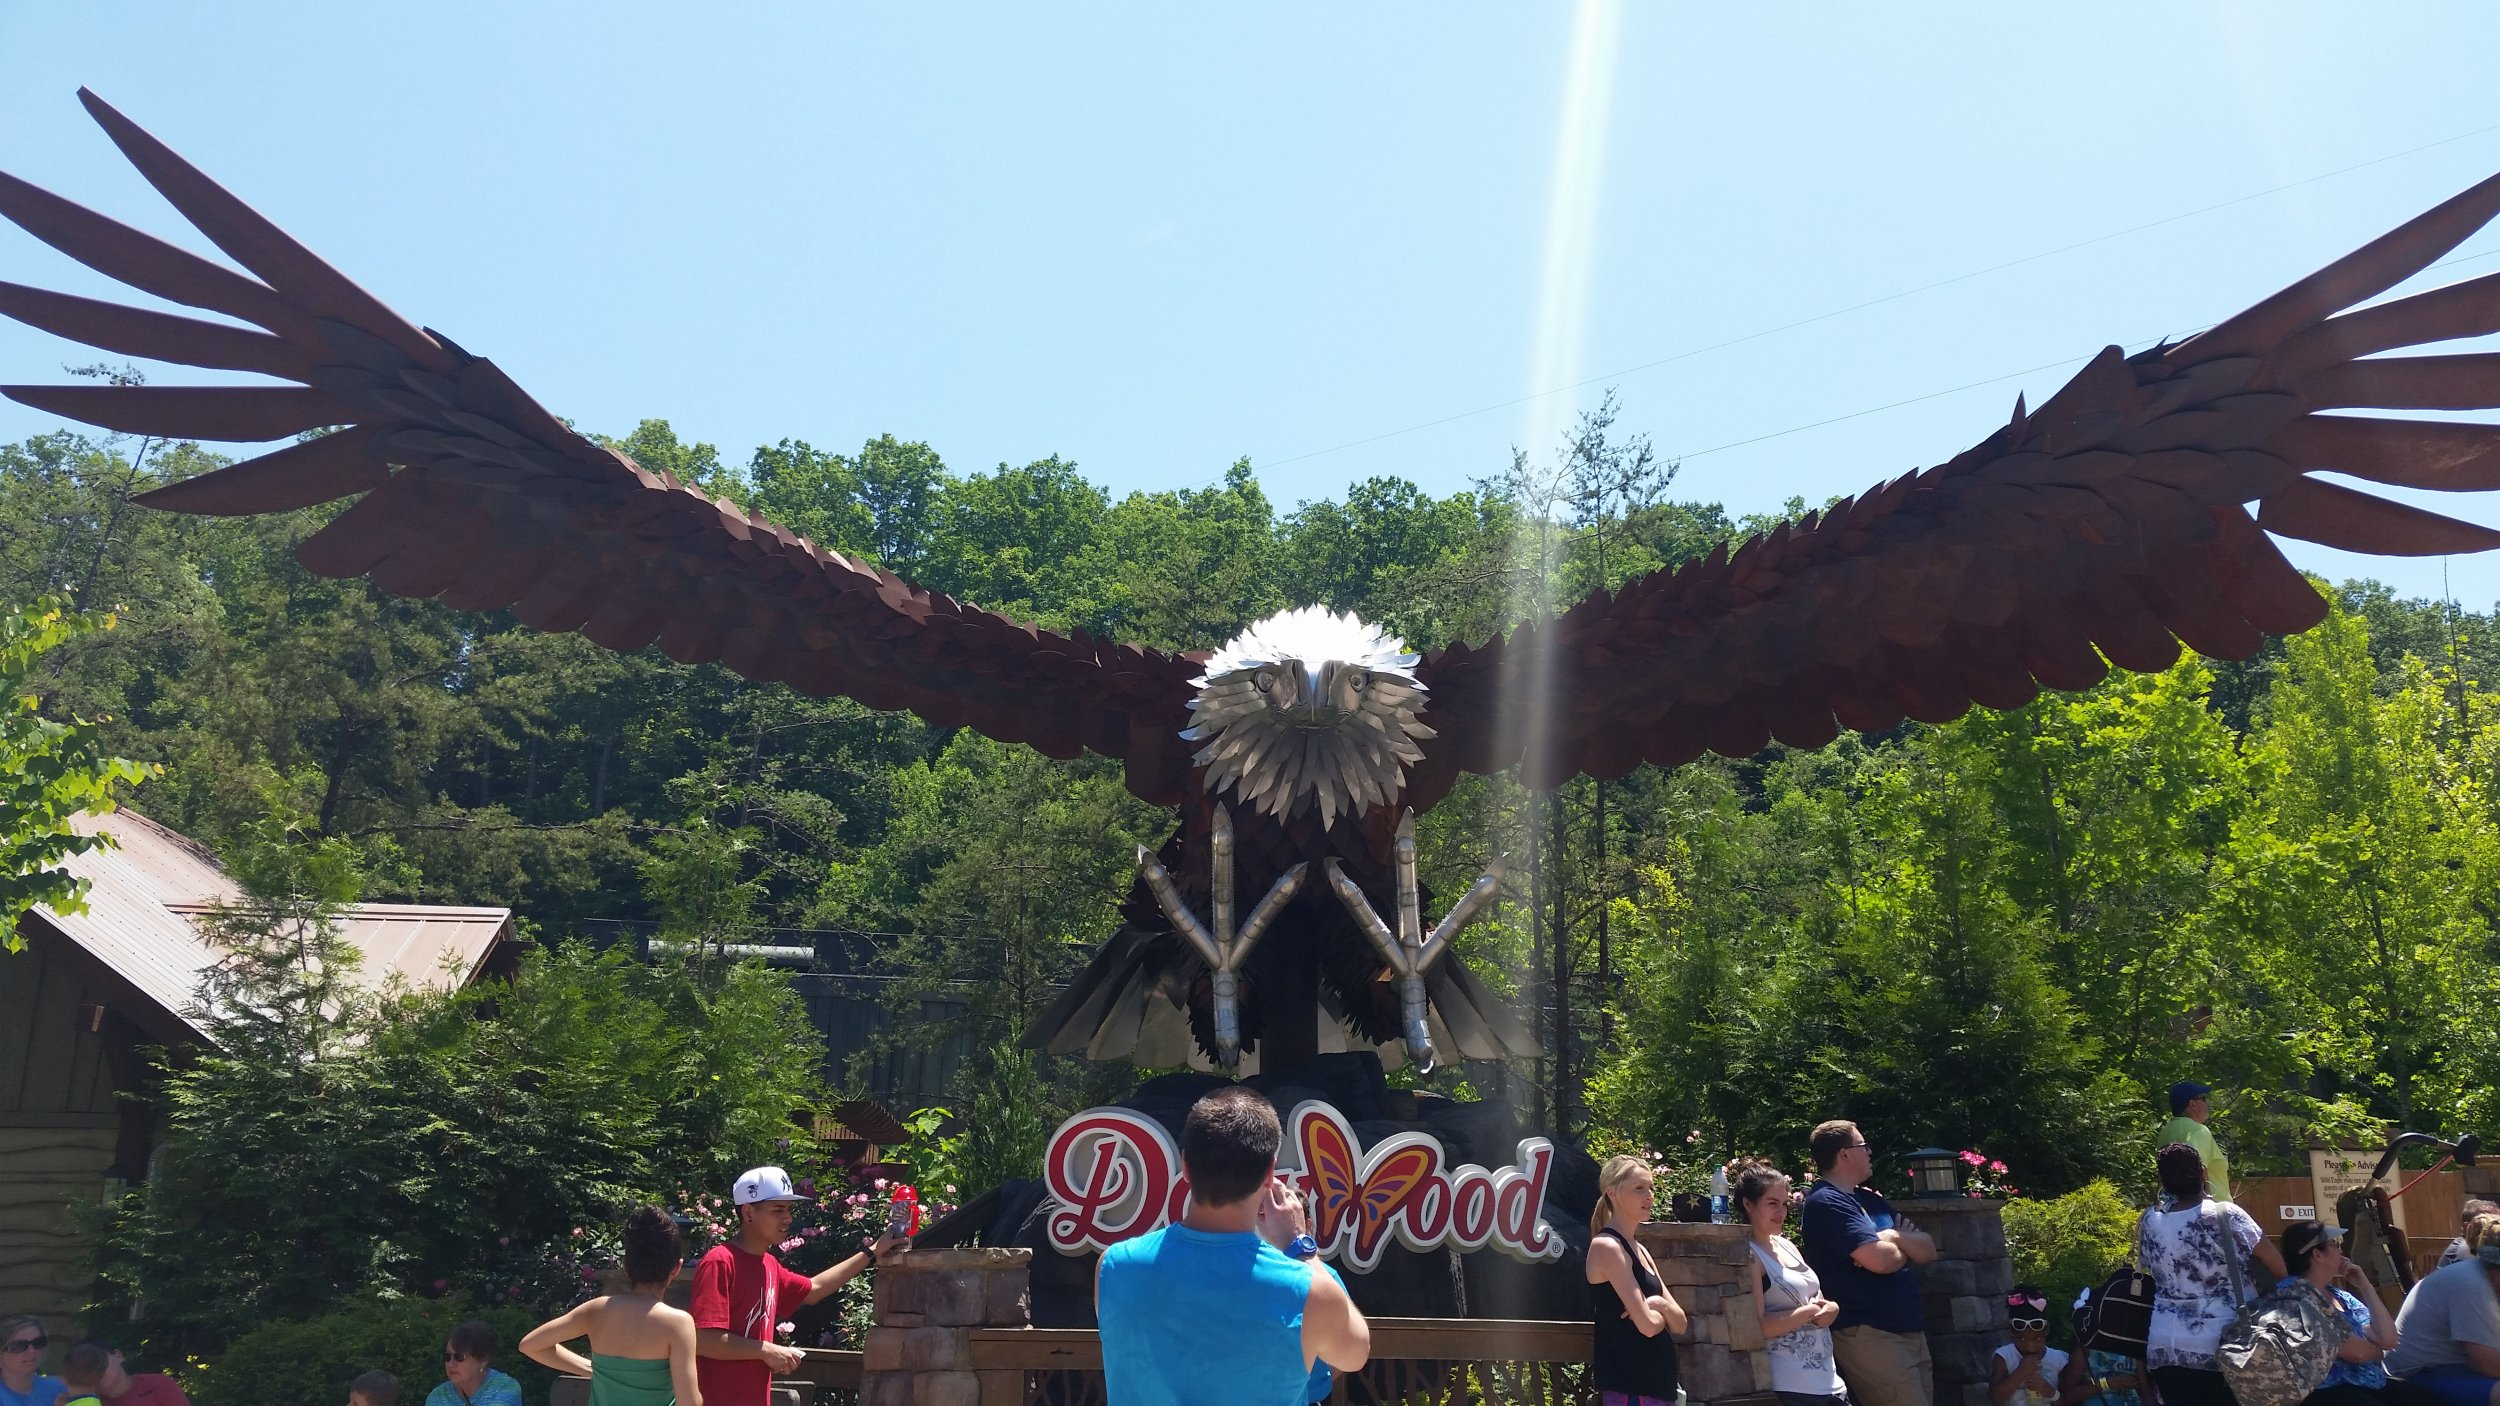 Why Do People Still Go to Dollywood?